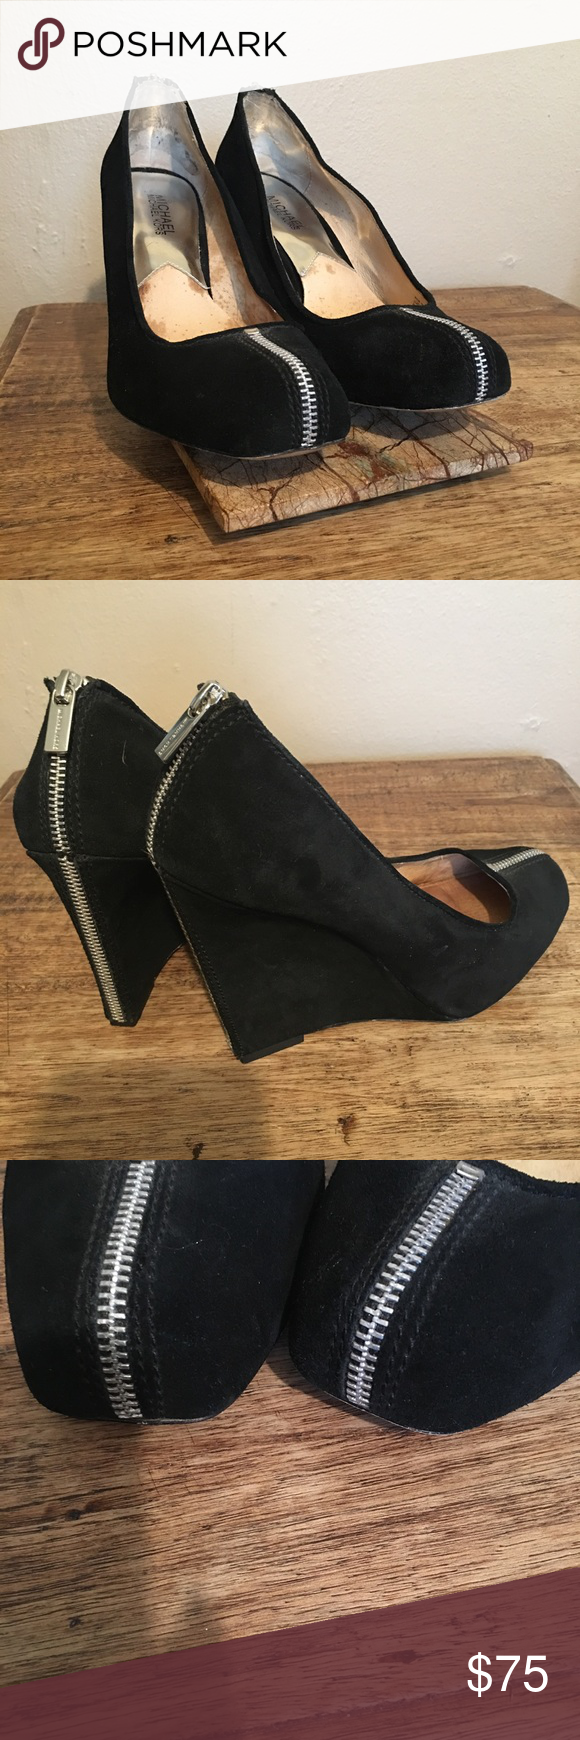 Preowned Michael Kors Shoe 9 1/2 This is a pair of Preowned Michael Kors shoes black Suede in color with silver zipper decor up the back of the heel and front of the toe, gently worn, in great condition absolute gorgeous shoe. Michael Kors Shoes Heels